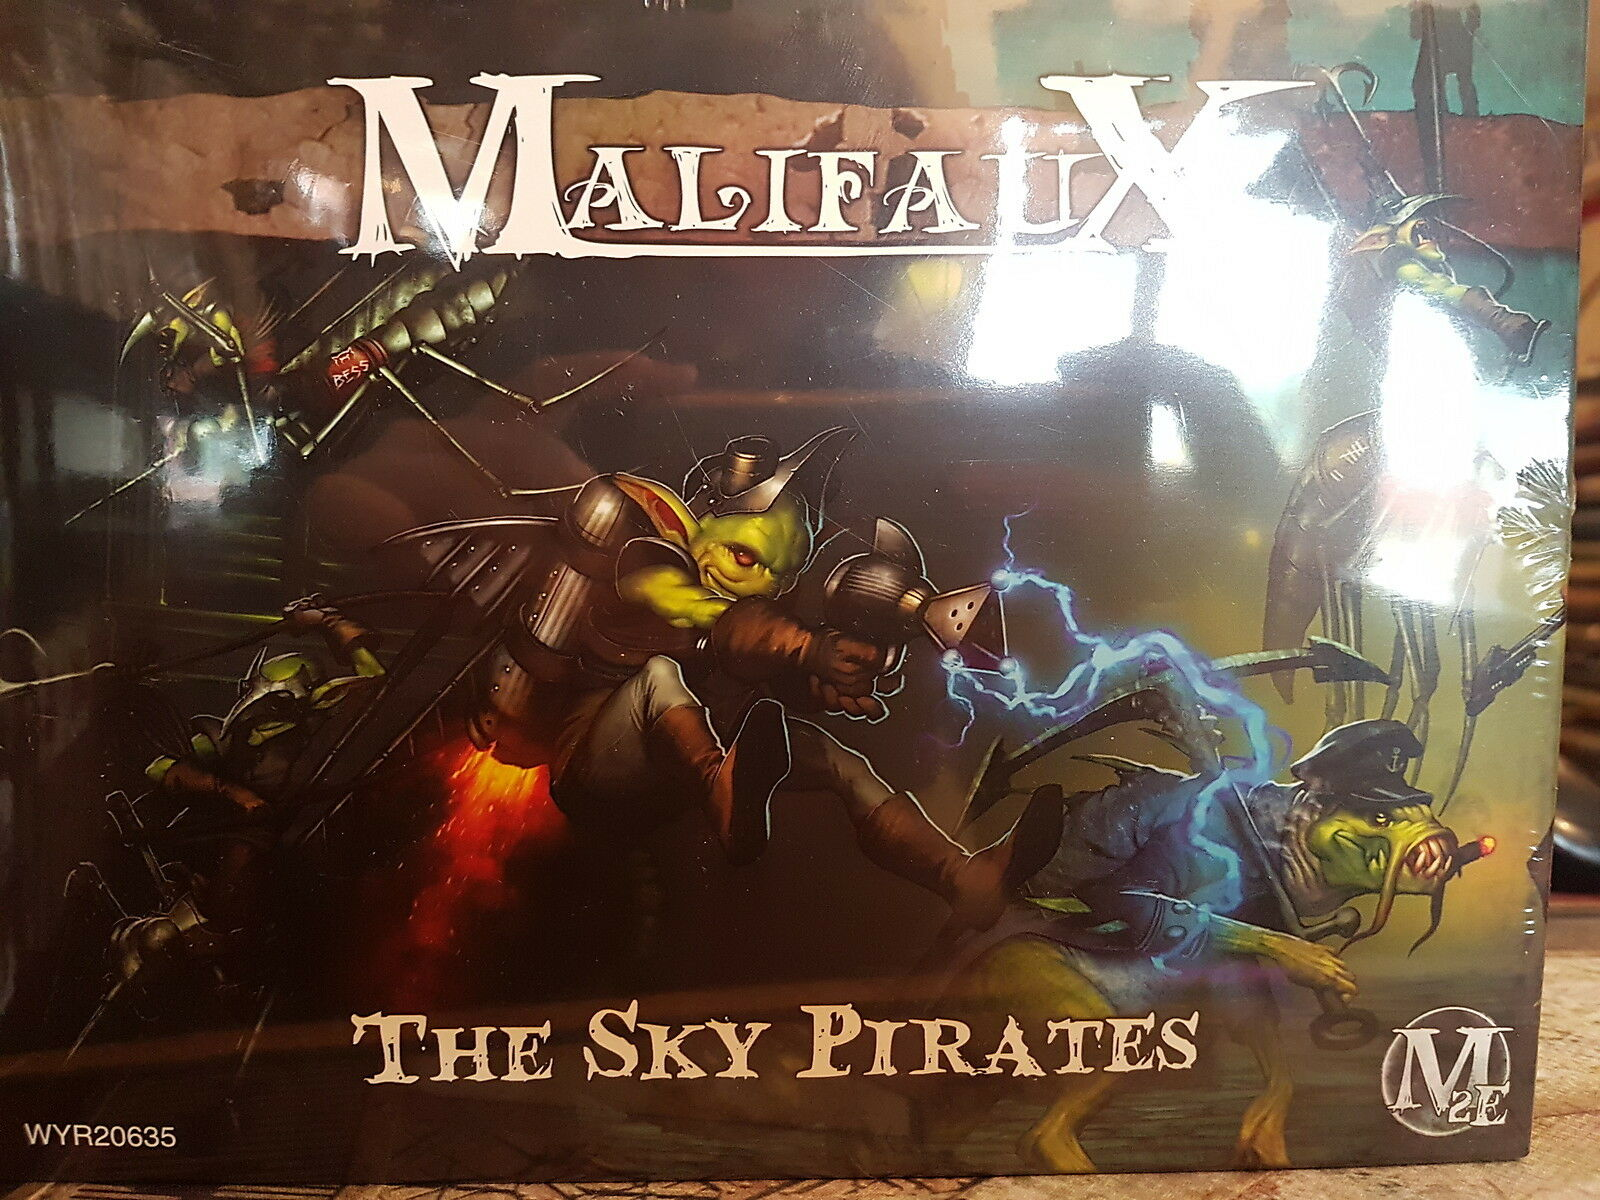 MALIFAUX 2E THE SKY PIRATES  - NEW AND SEALED